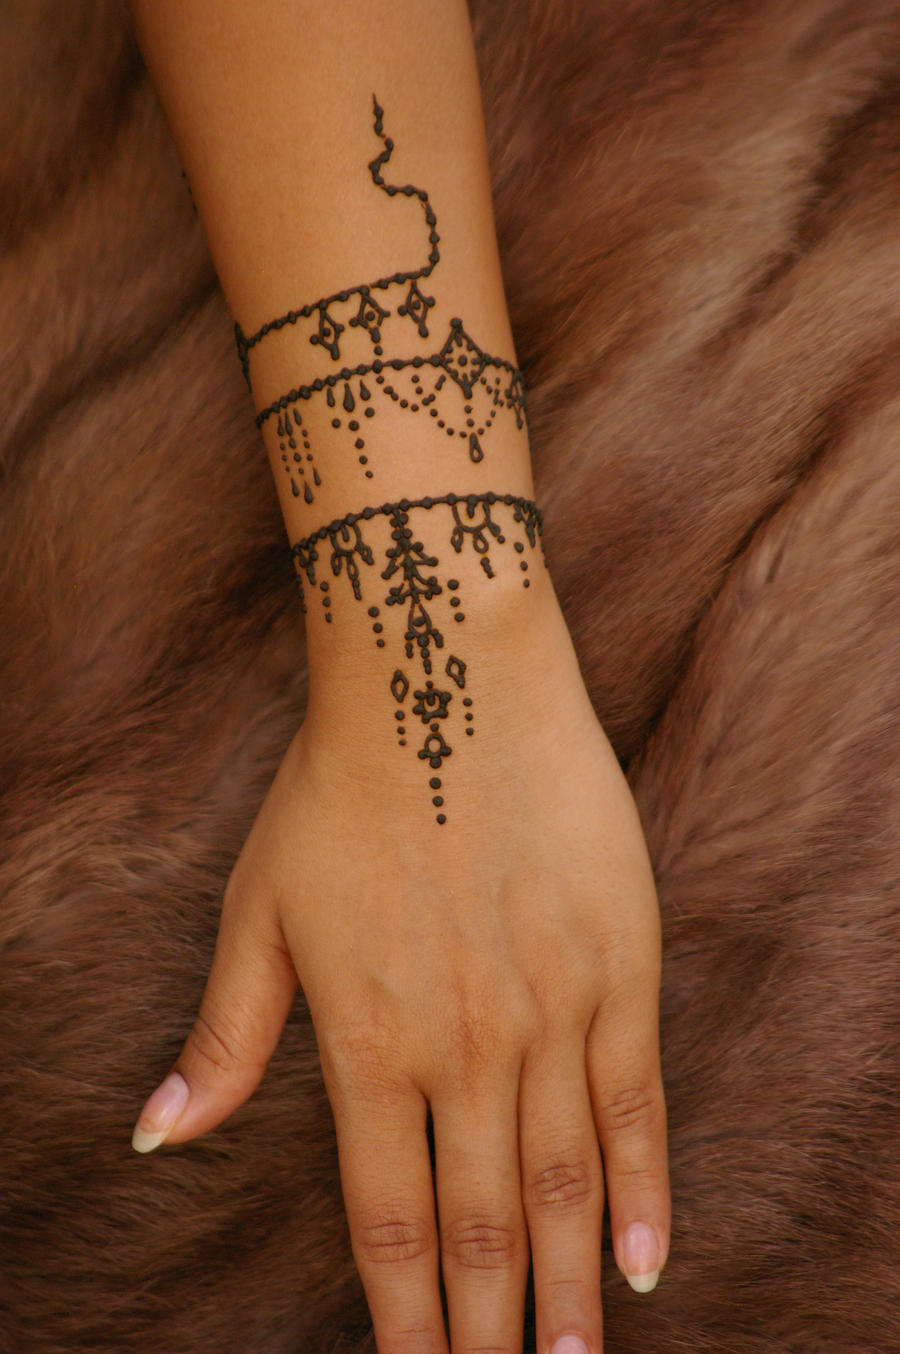 Henna Tattoo Hand Leicht Klein: ~Antique Jewelry Inspired Henna Tattoo Hand~ By